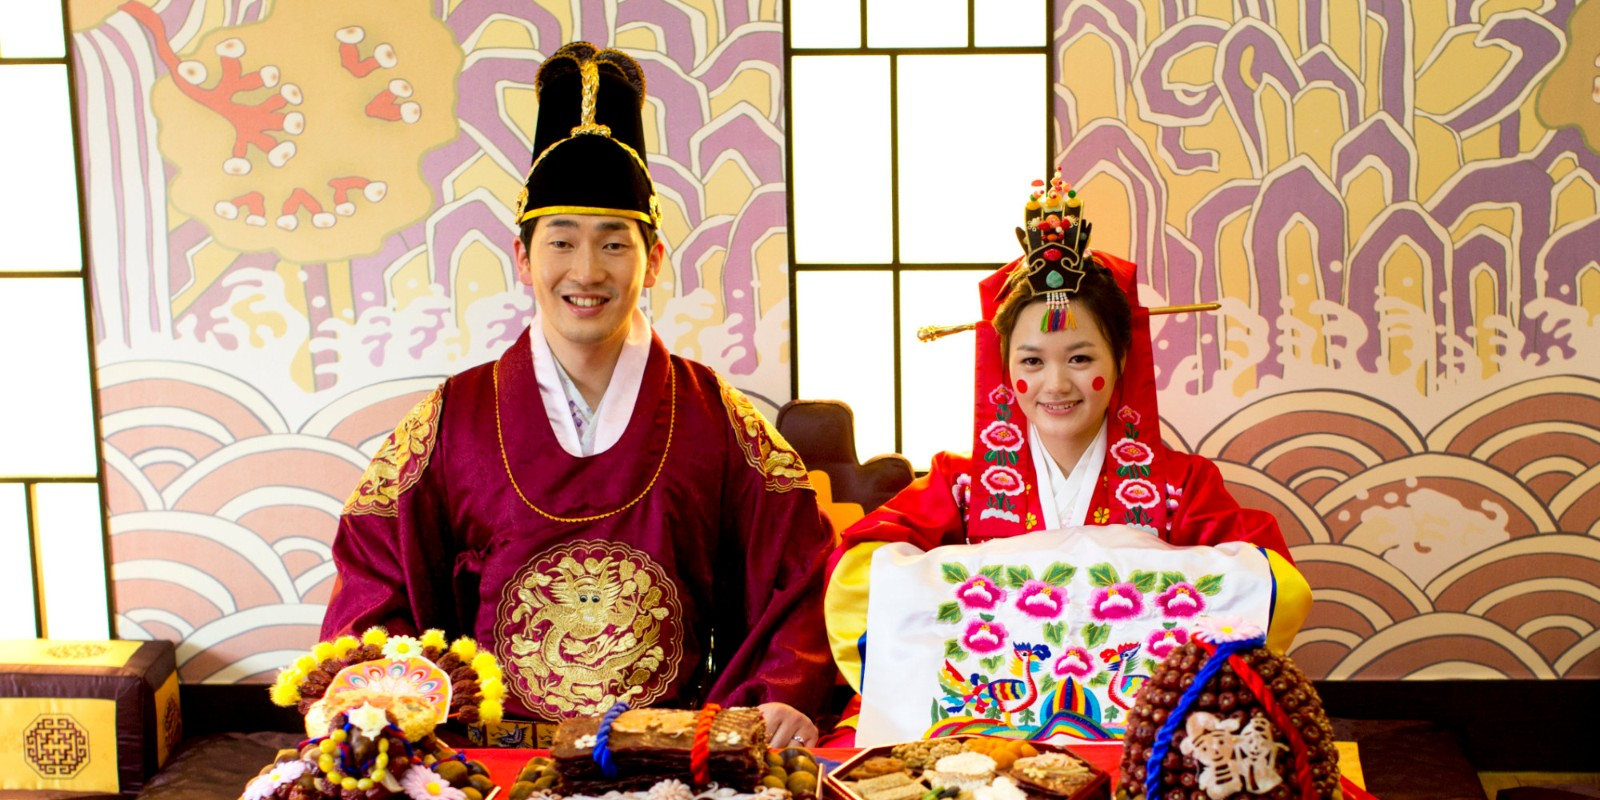 Korean Wedding Traditions: A Union Of Two Families - Easyday